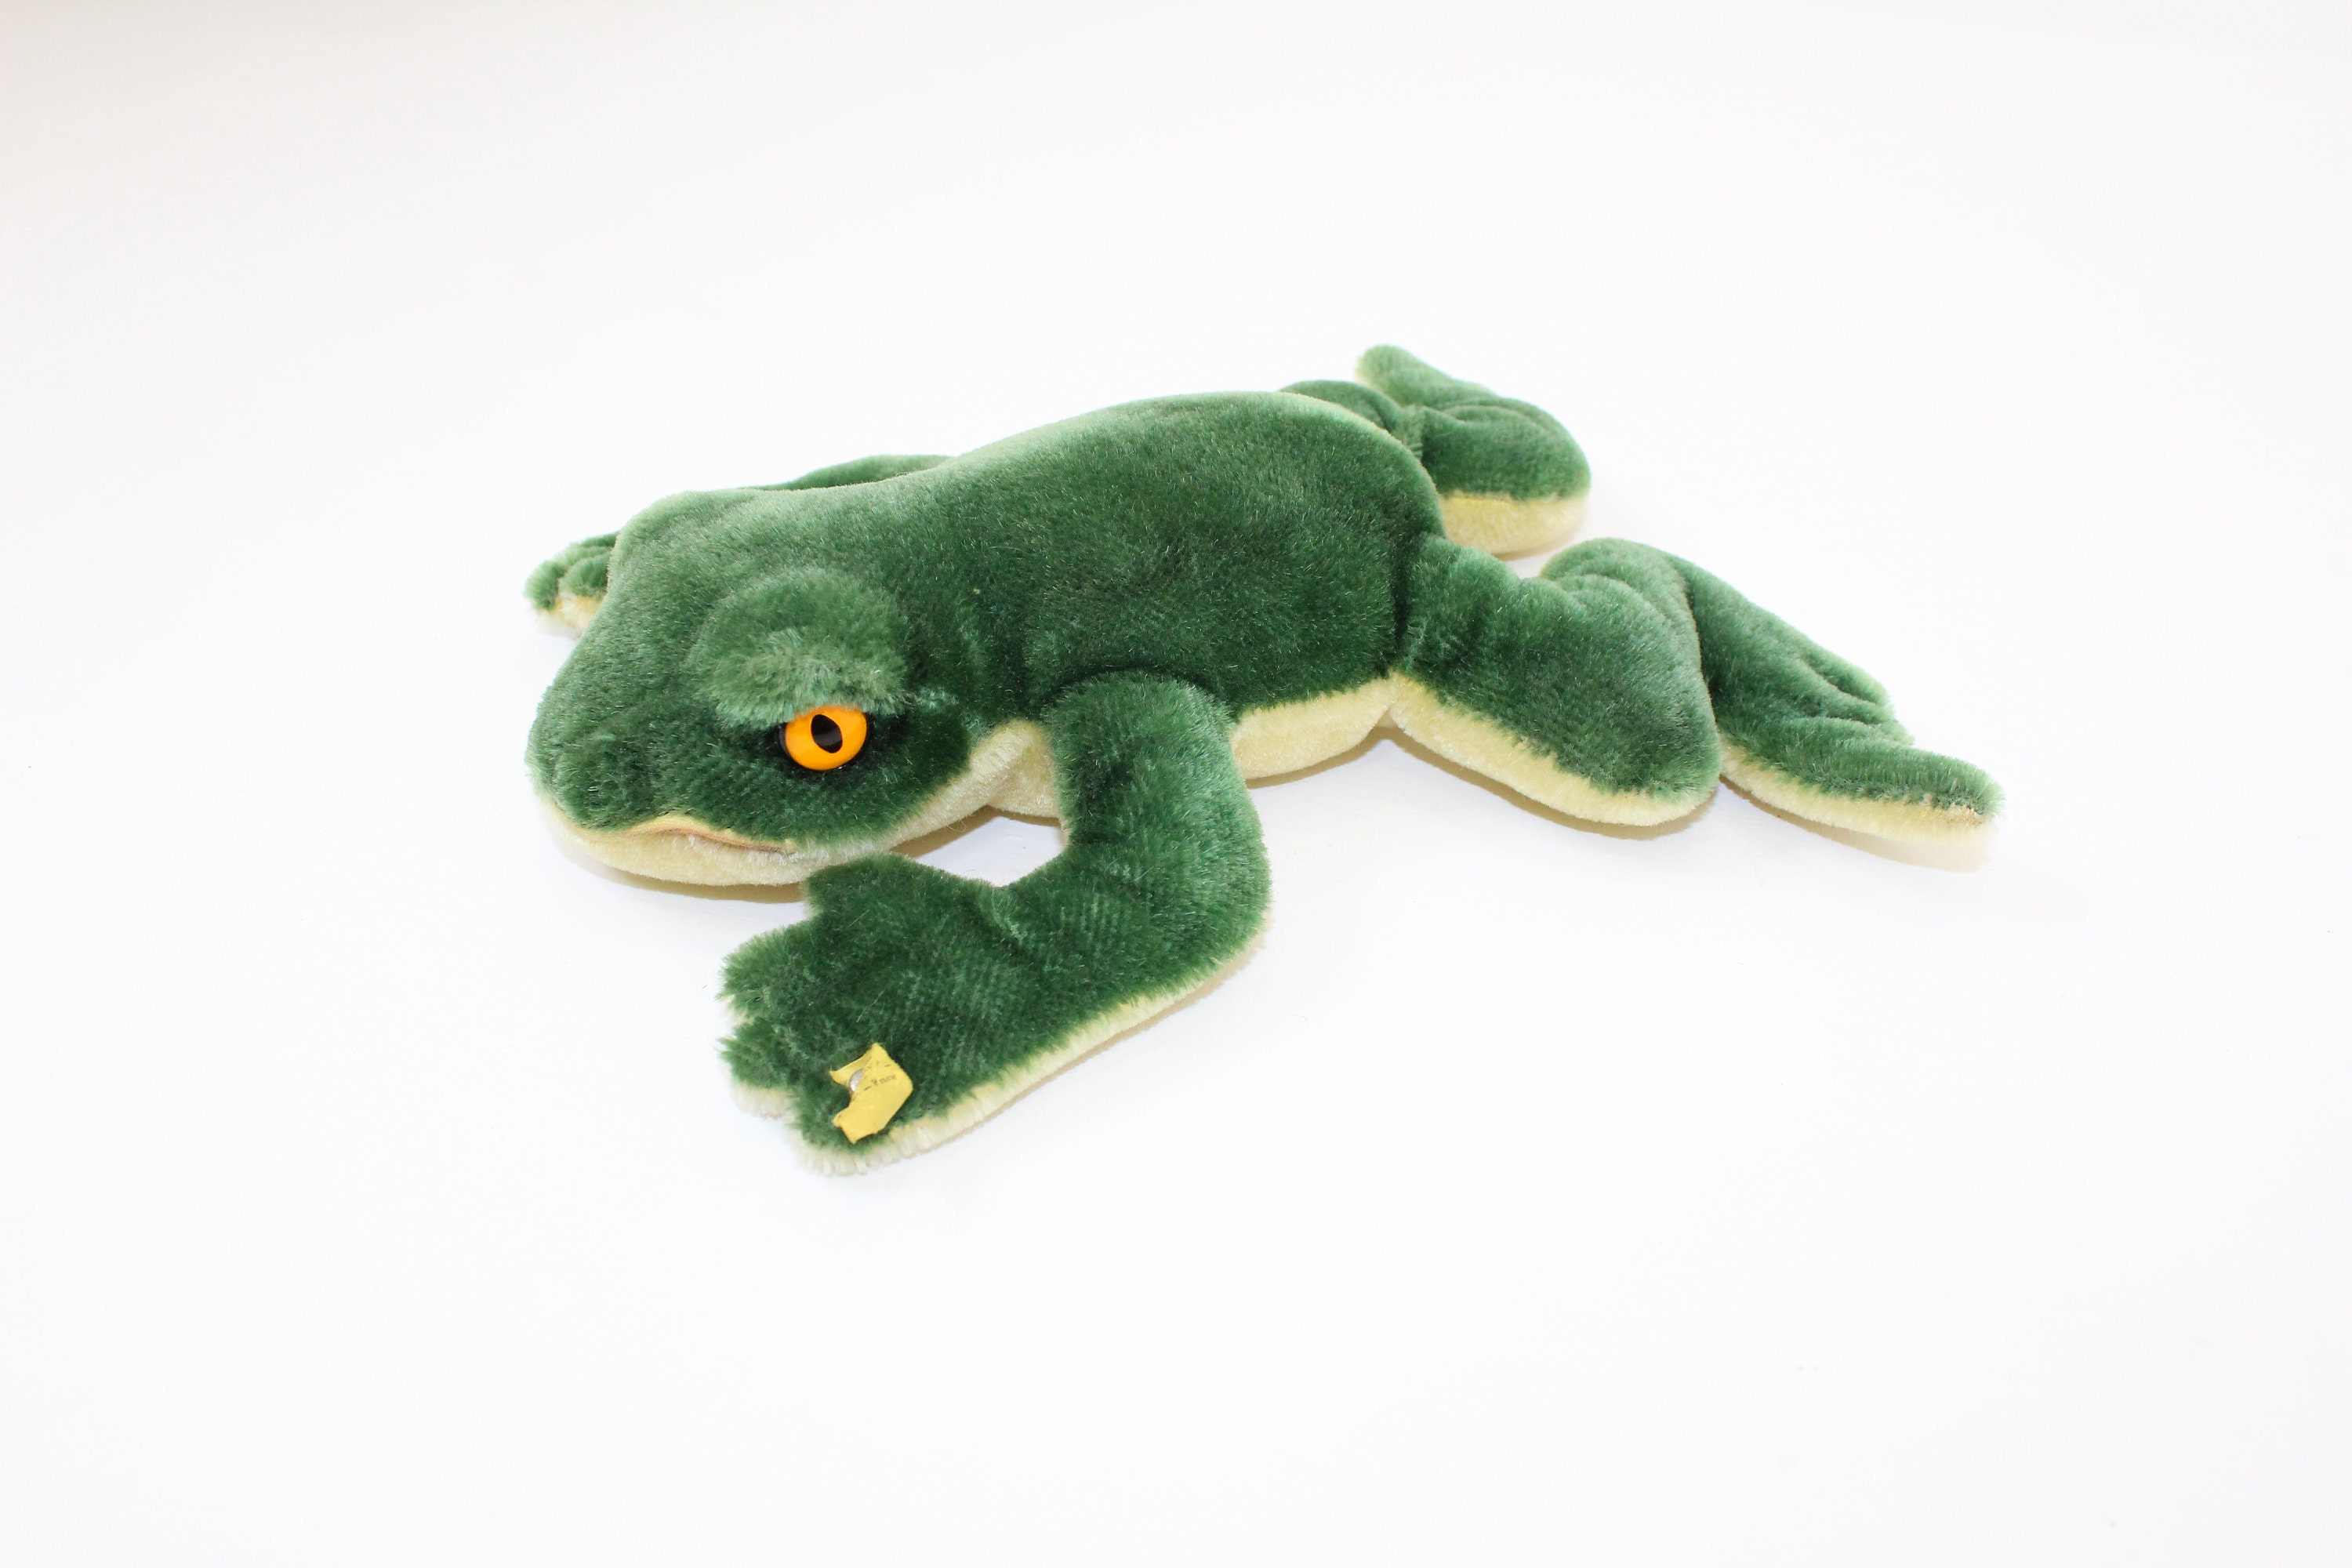 Vintage 1960s Steiff Froggy the frog green mohair soft toy collectable with button and yellow flag